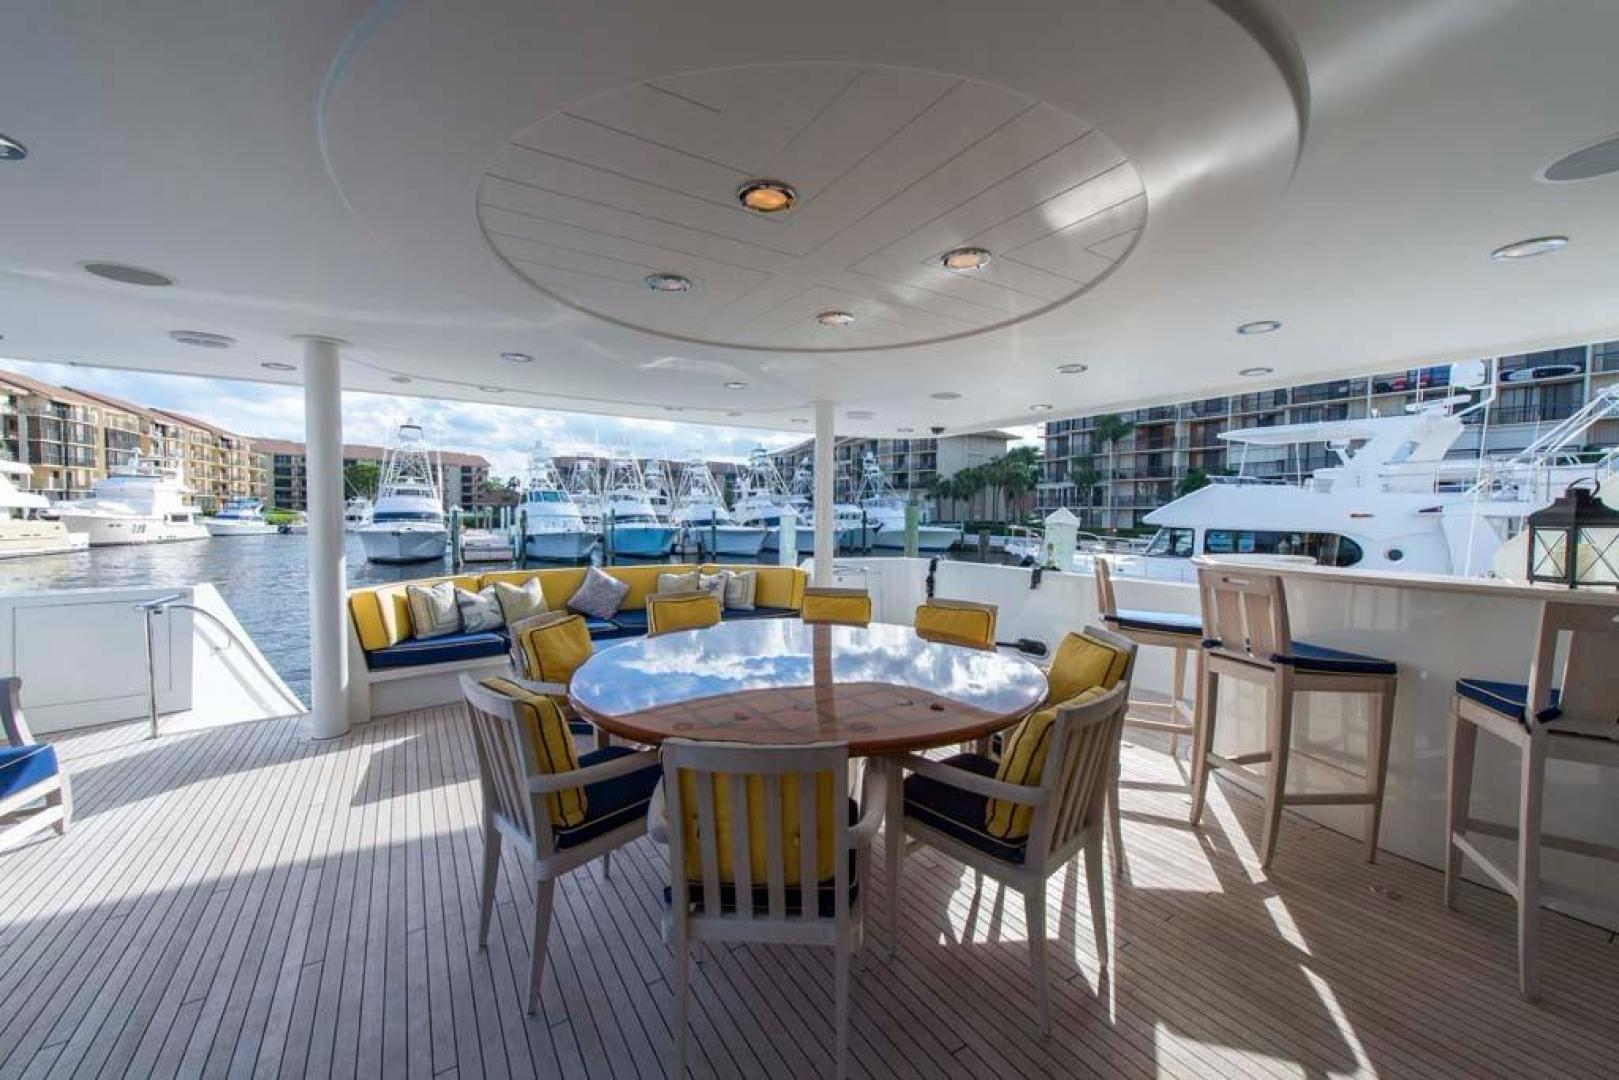 Westport-Tri-Deck-2003-Vision-Jupiter-Florida-United-States-Aft-Deck-370699